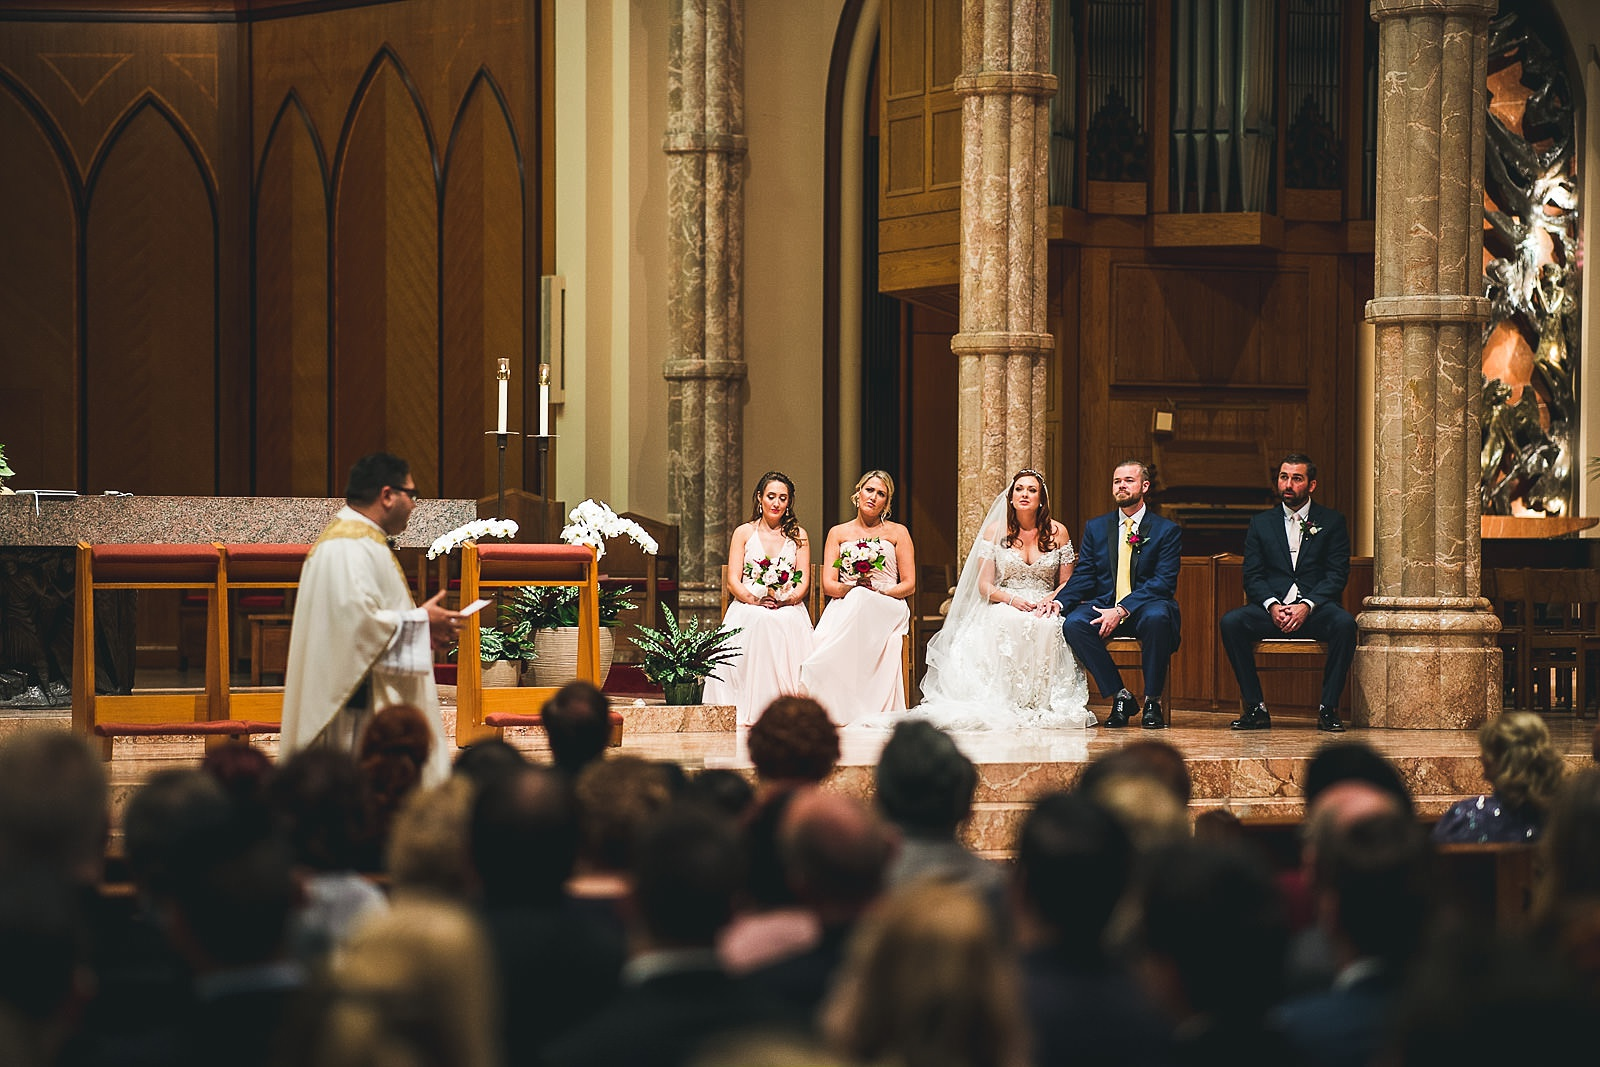 31 epic church photos - Hilton Chicago Wedding Photographer // Sarah + Aaron